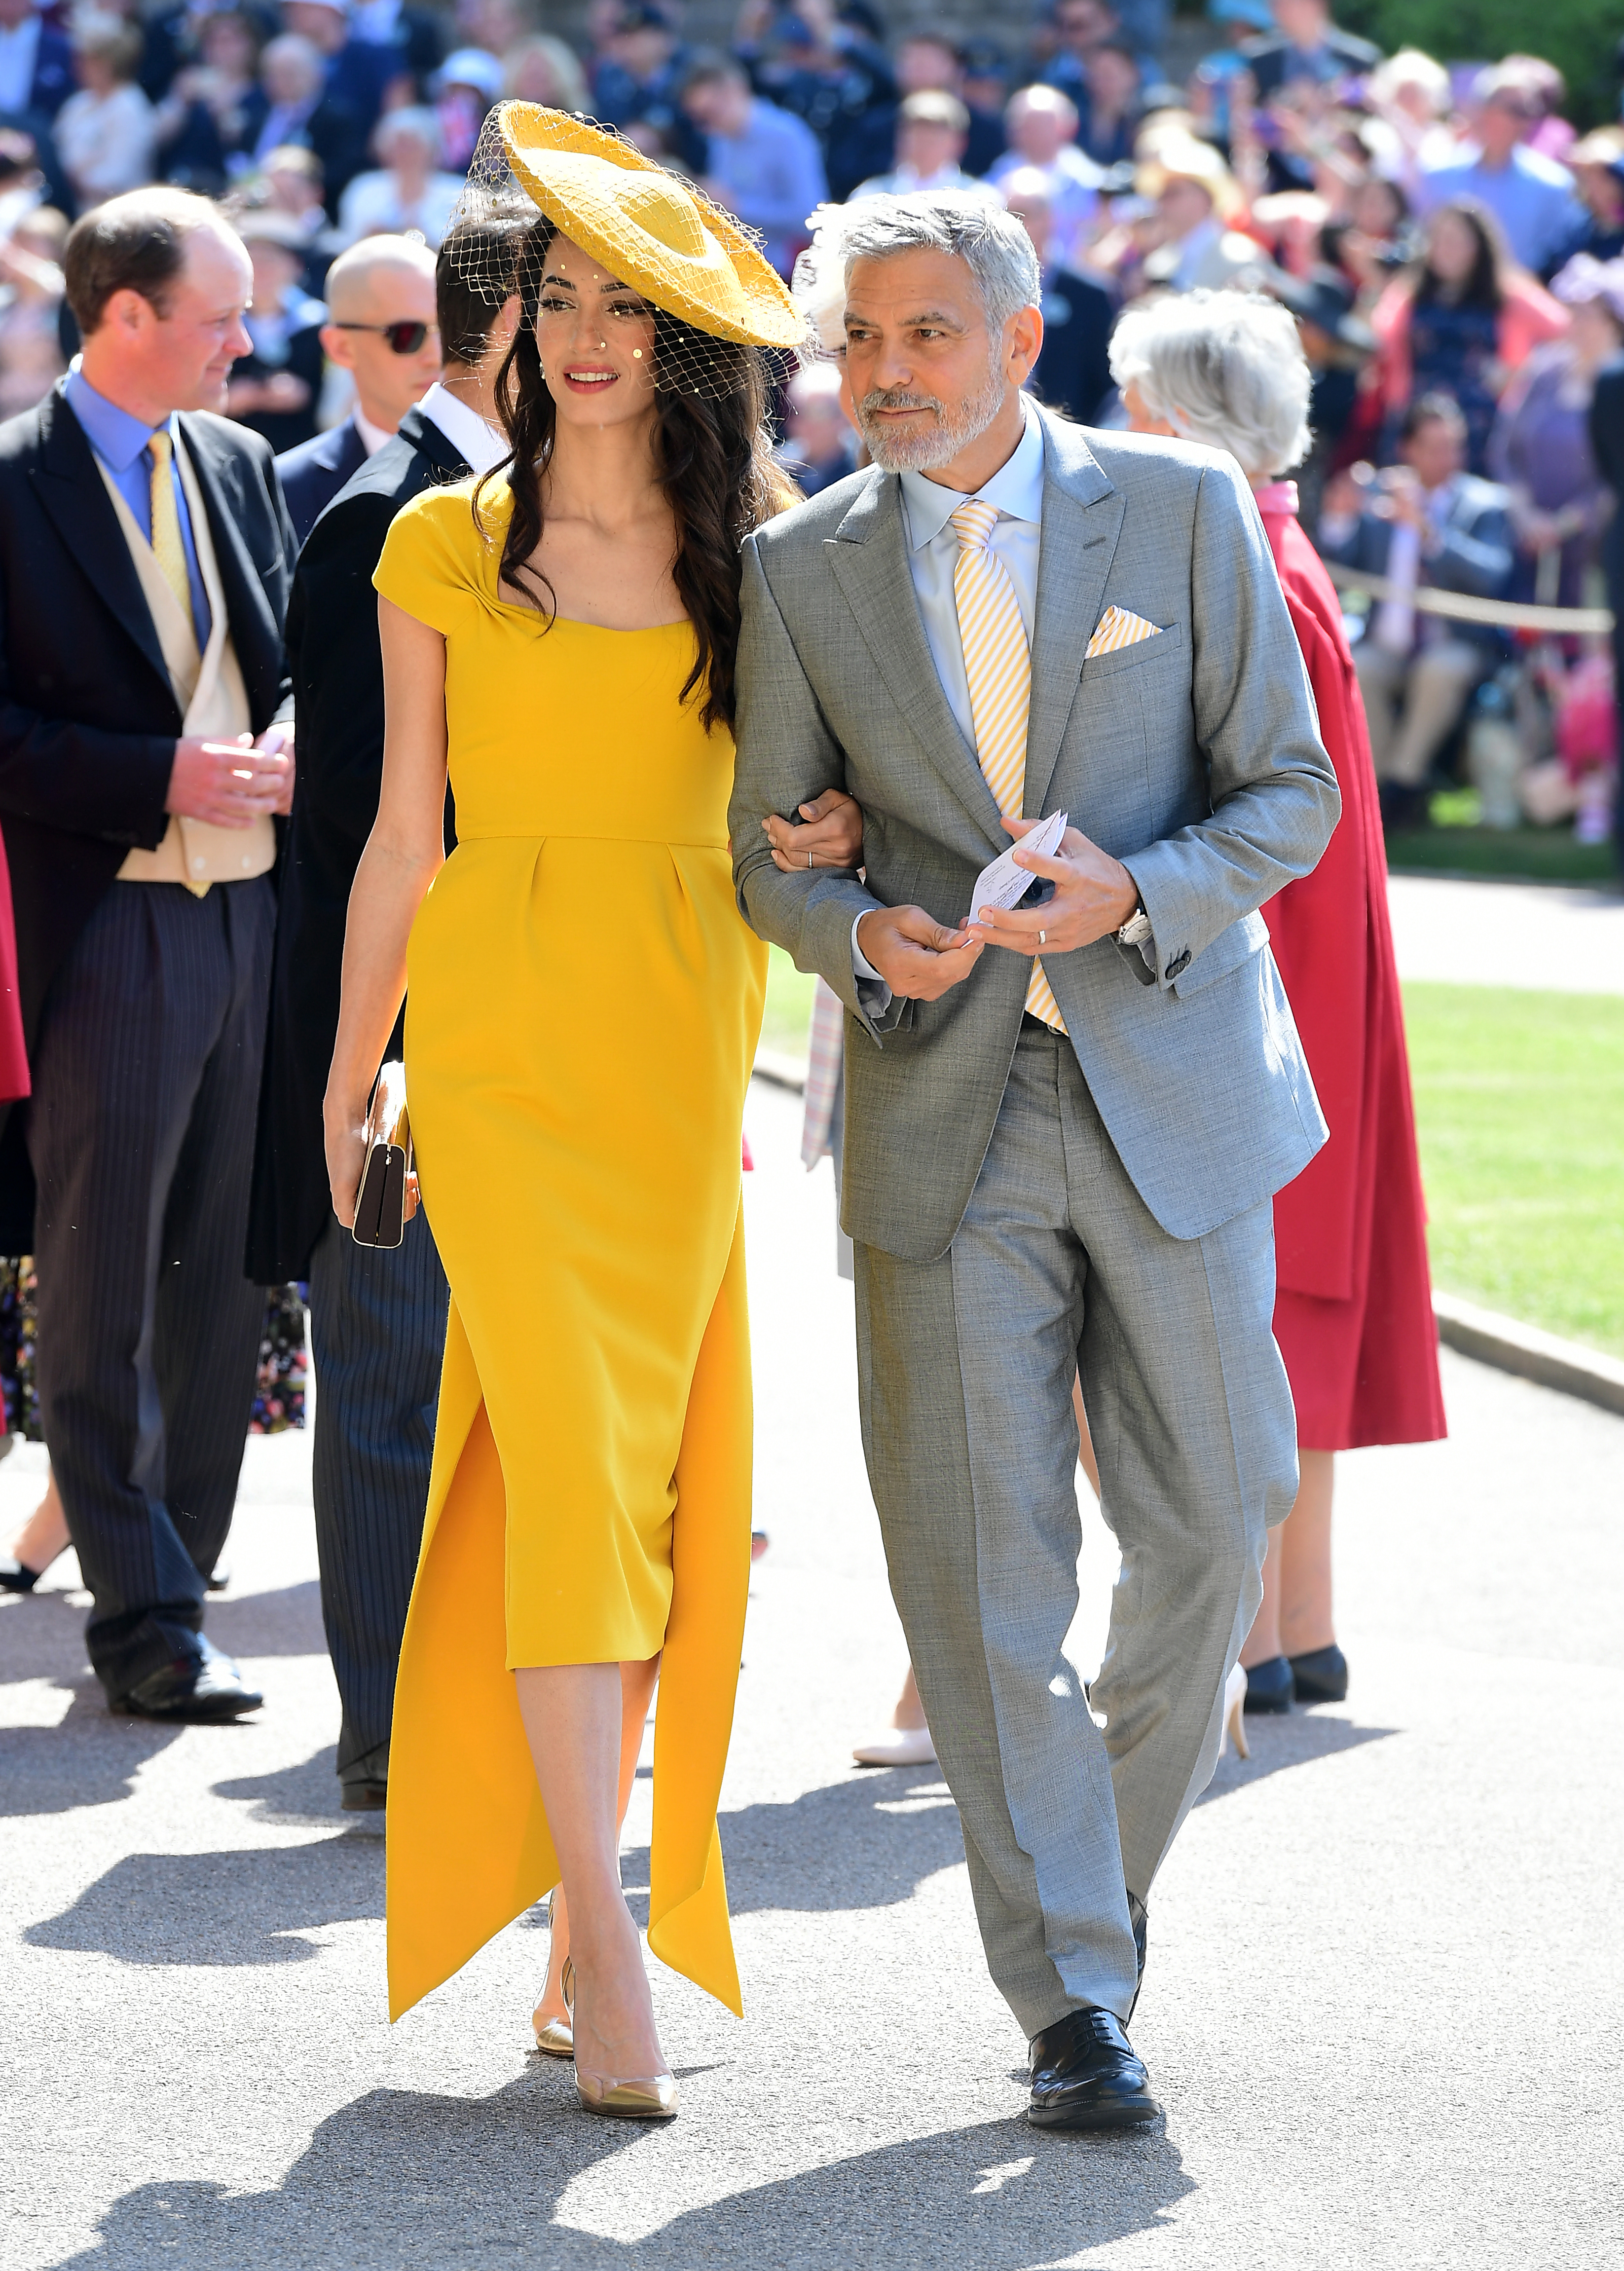 Amal and George Clooney arrive at St George's Chapel at Windsor Castle for the wedding of Meghan Markle and Prince Harry. (Ian West/PA)